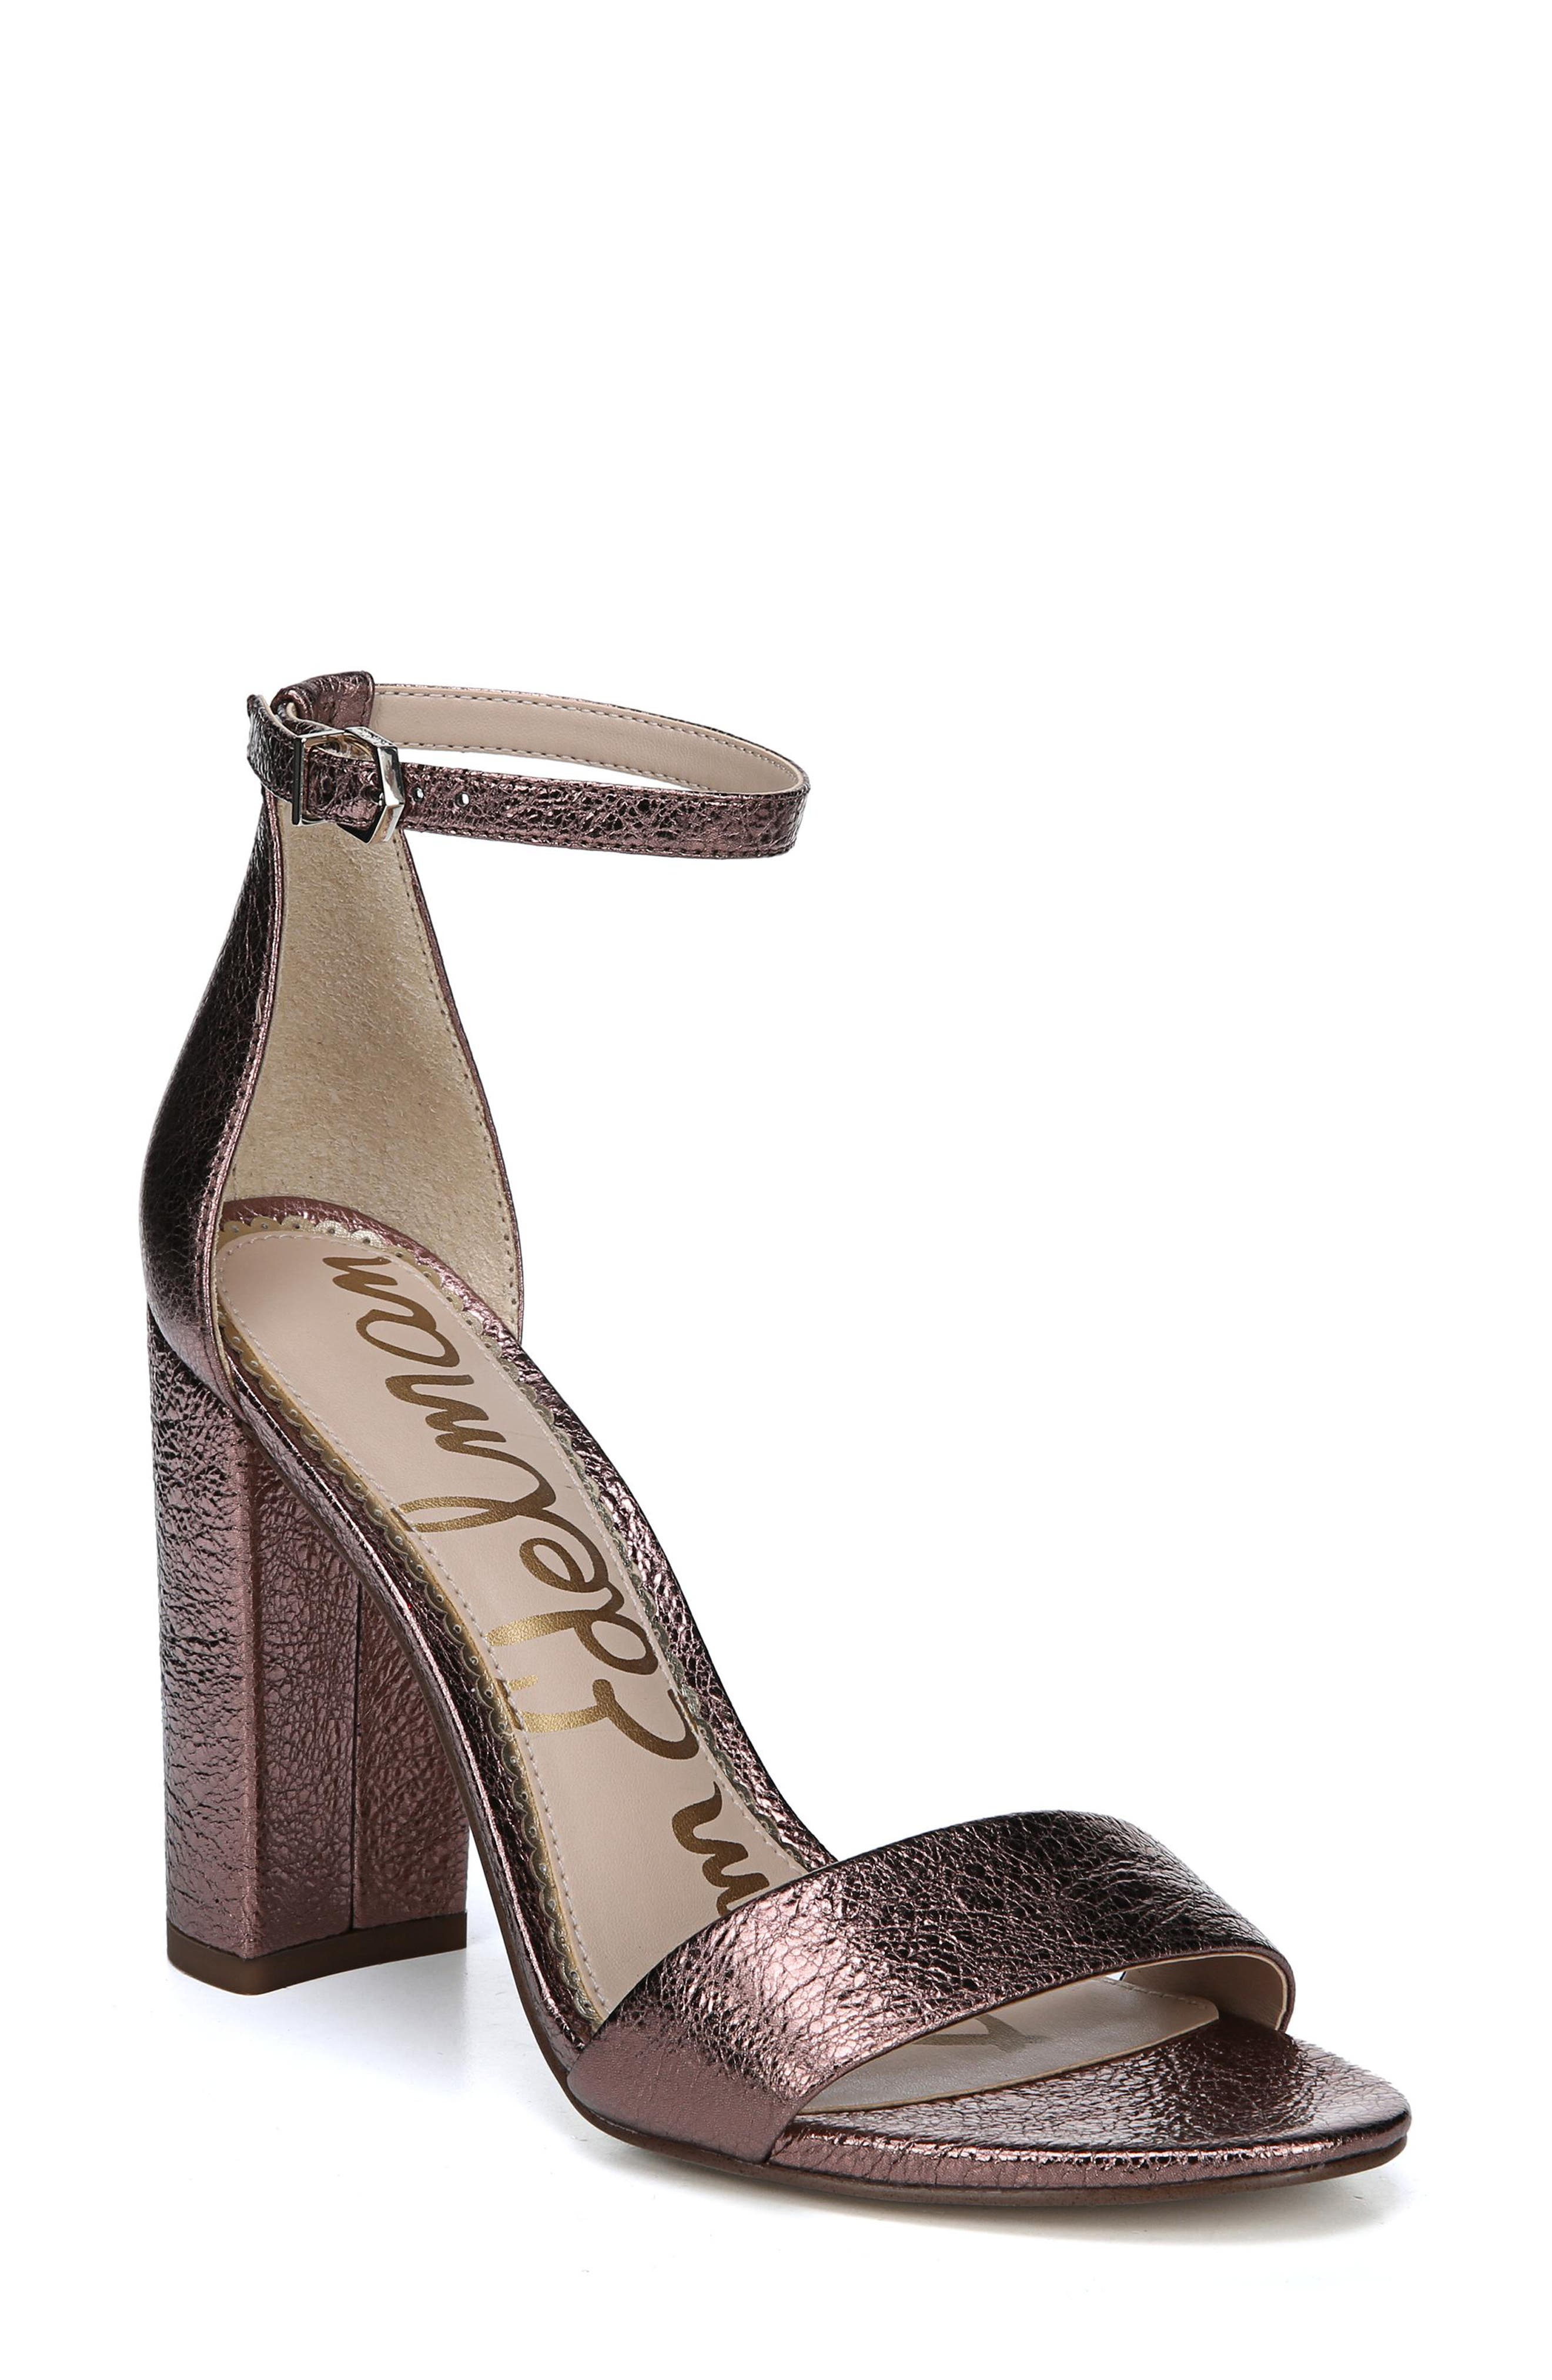 Yaro Ankle Strap Sandal,                         Main,                         color, Cameo Pink Suede